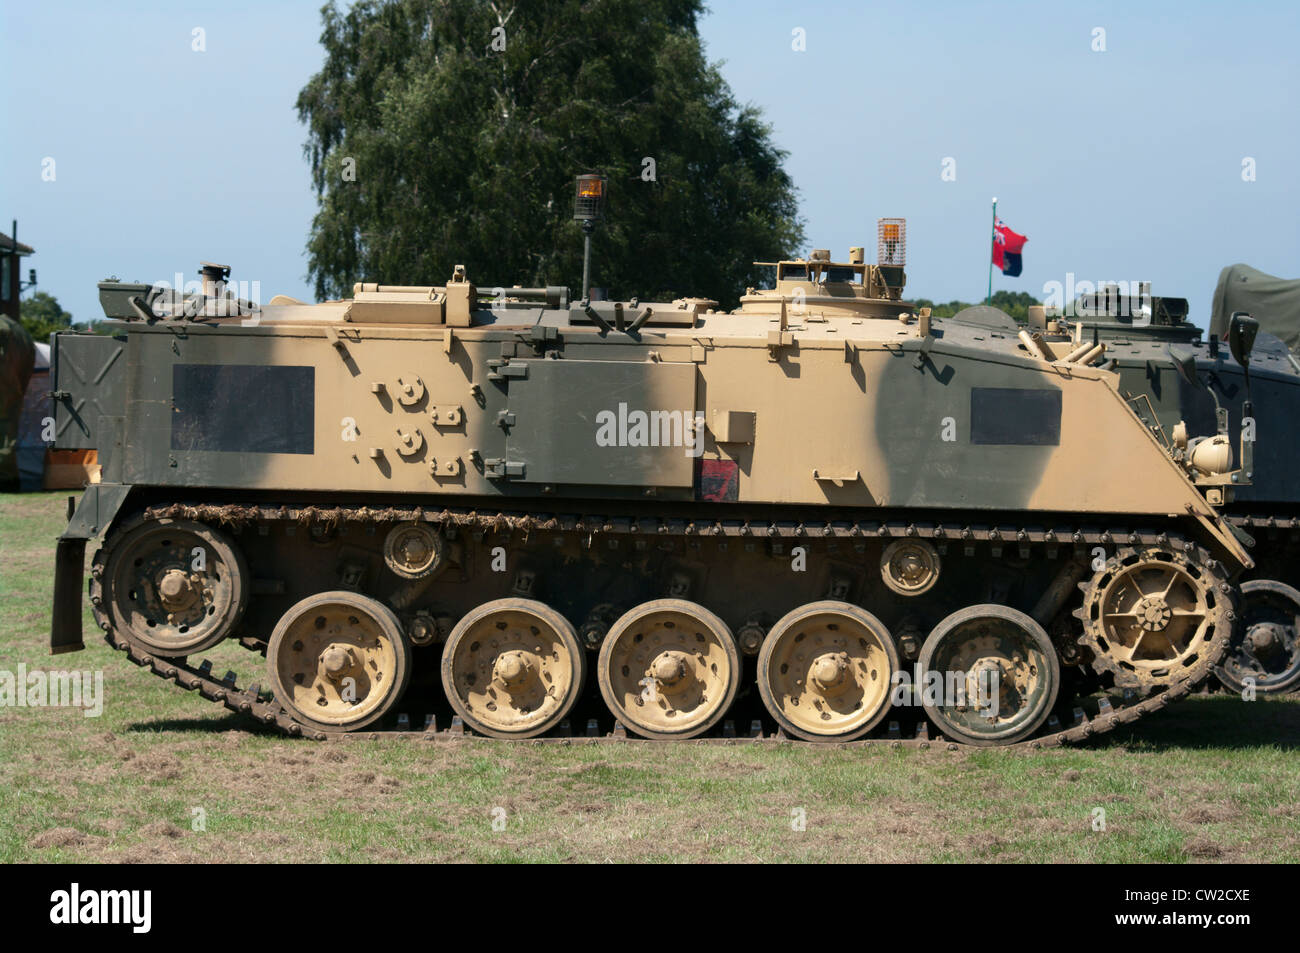 FV432 British Army Armoured Personnel Carrier In Desert Camouflage - Stock Image